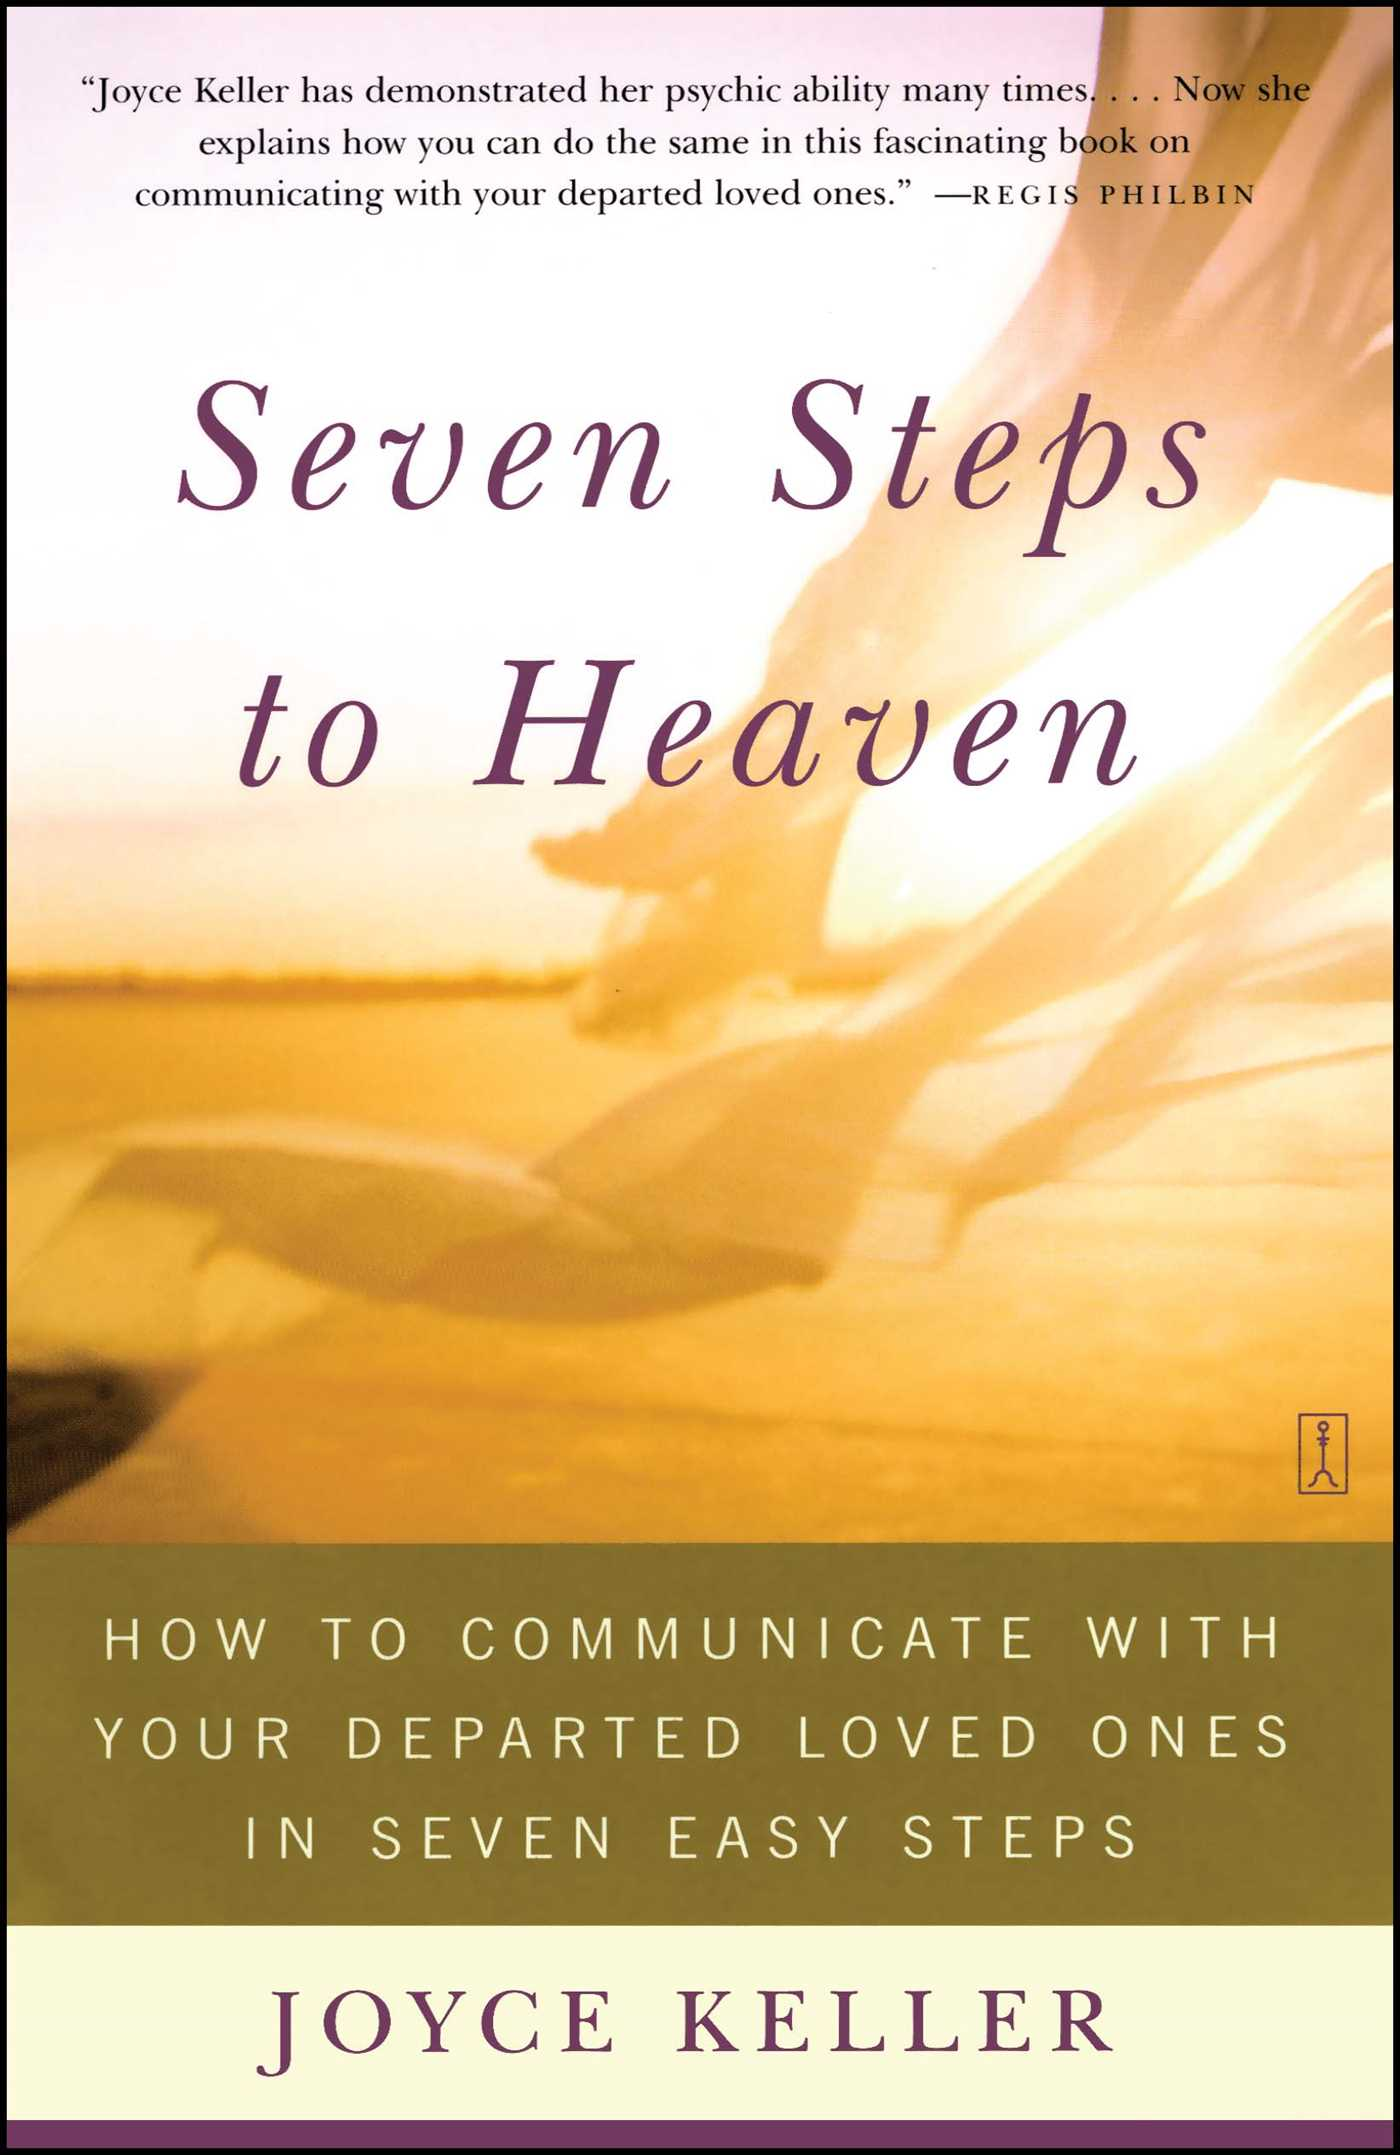 Seven steps to heaven 9780743225601 hr